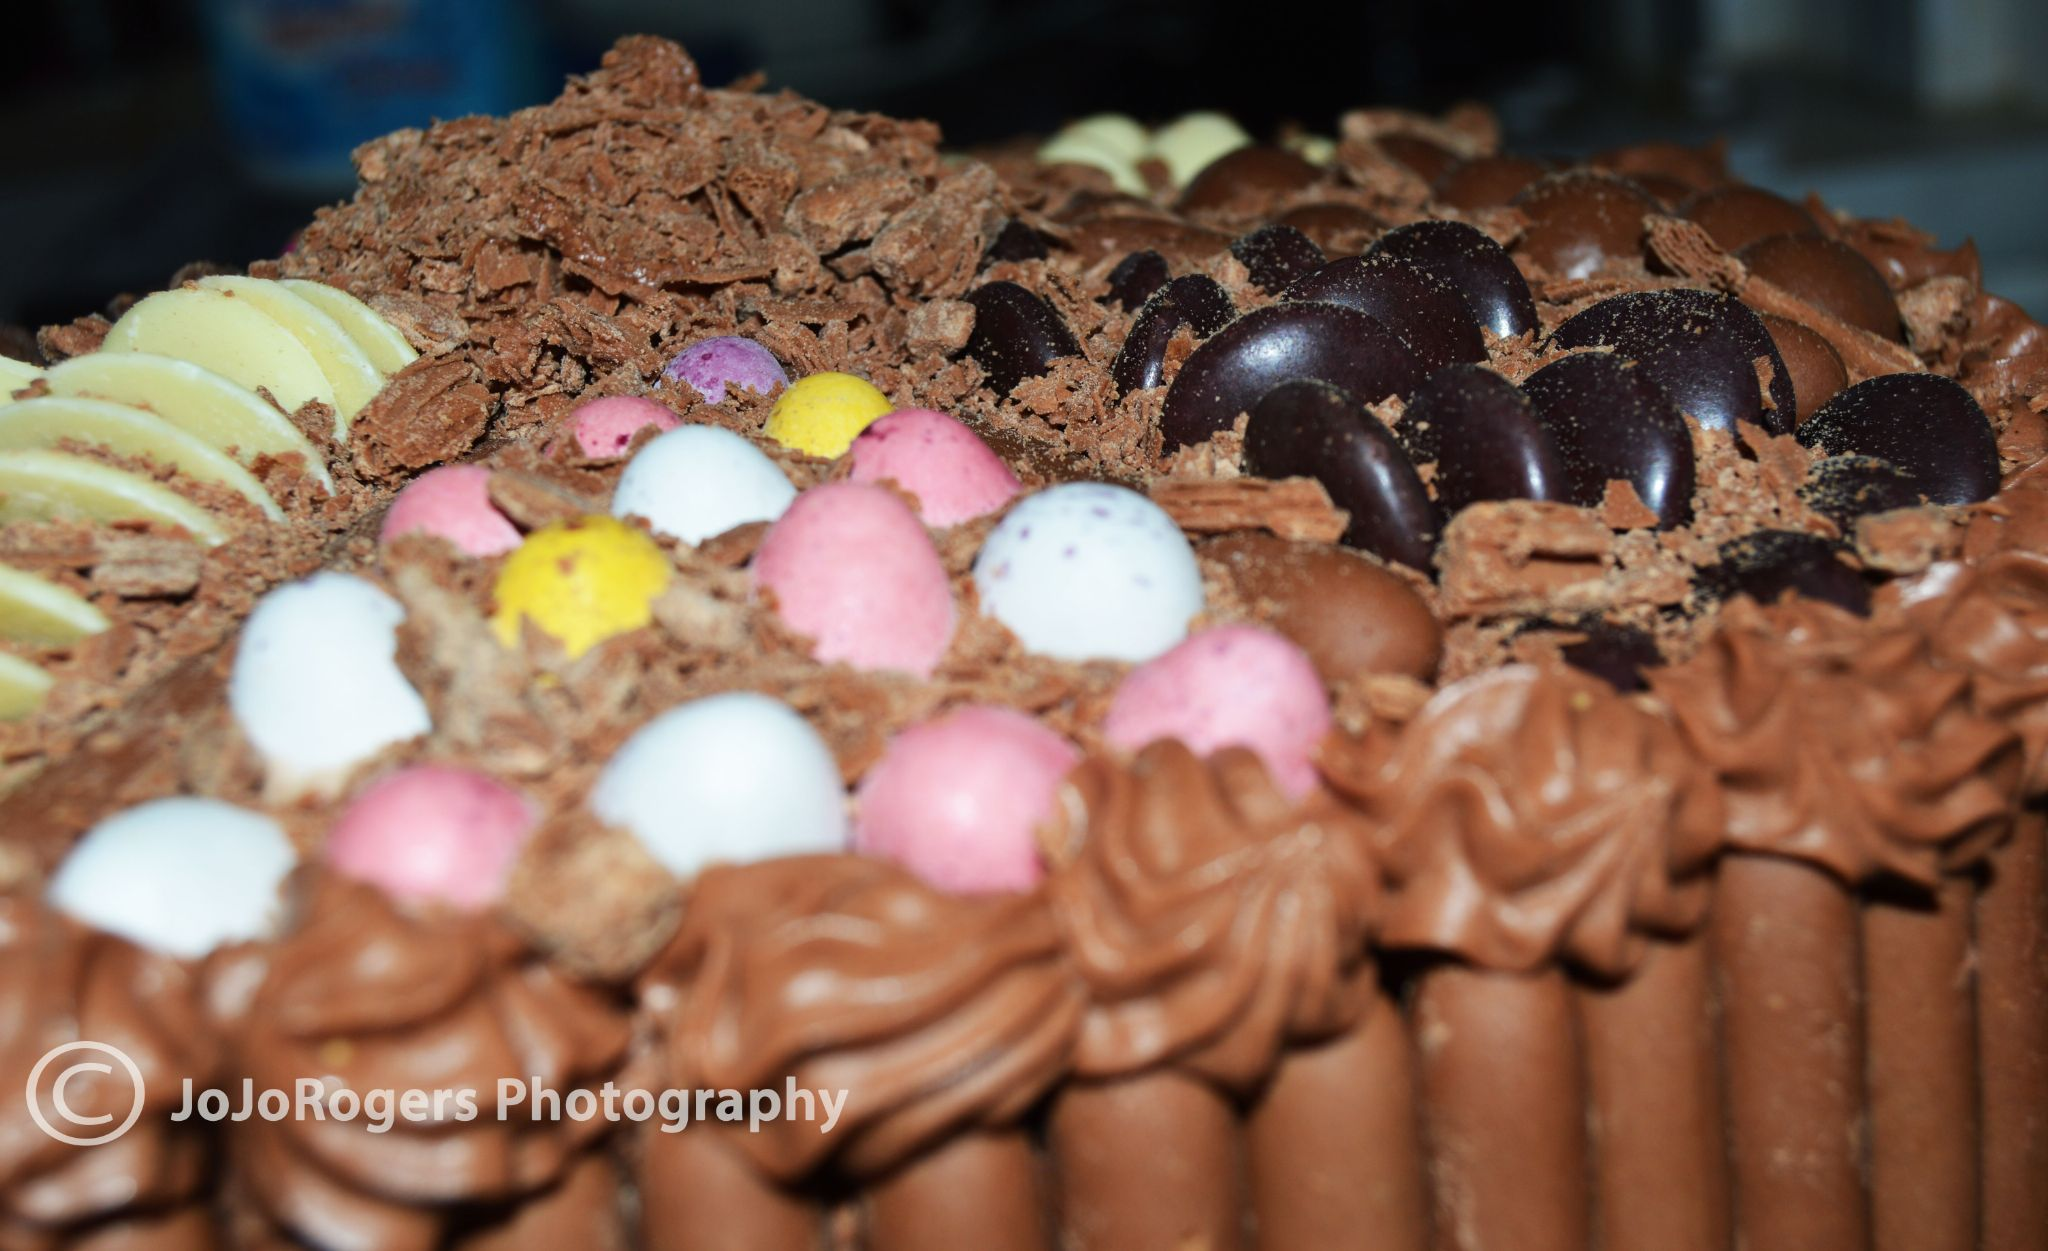 Cake Crazy by Josie Rogers